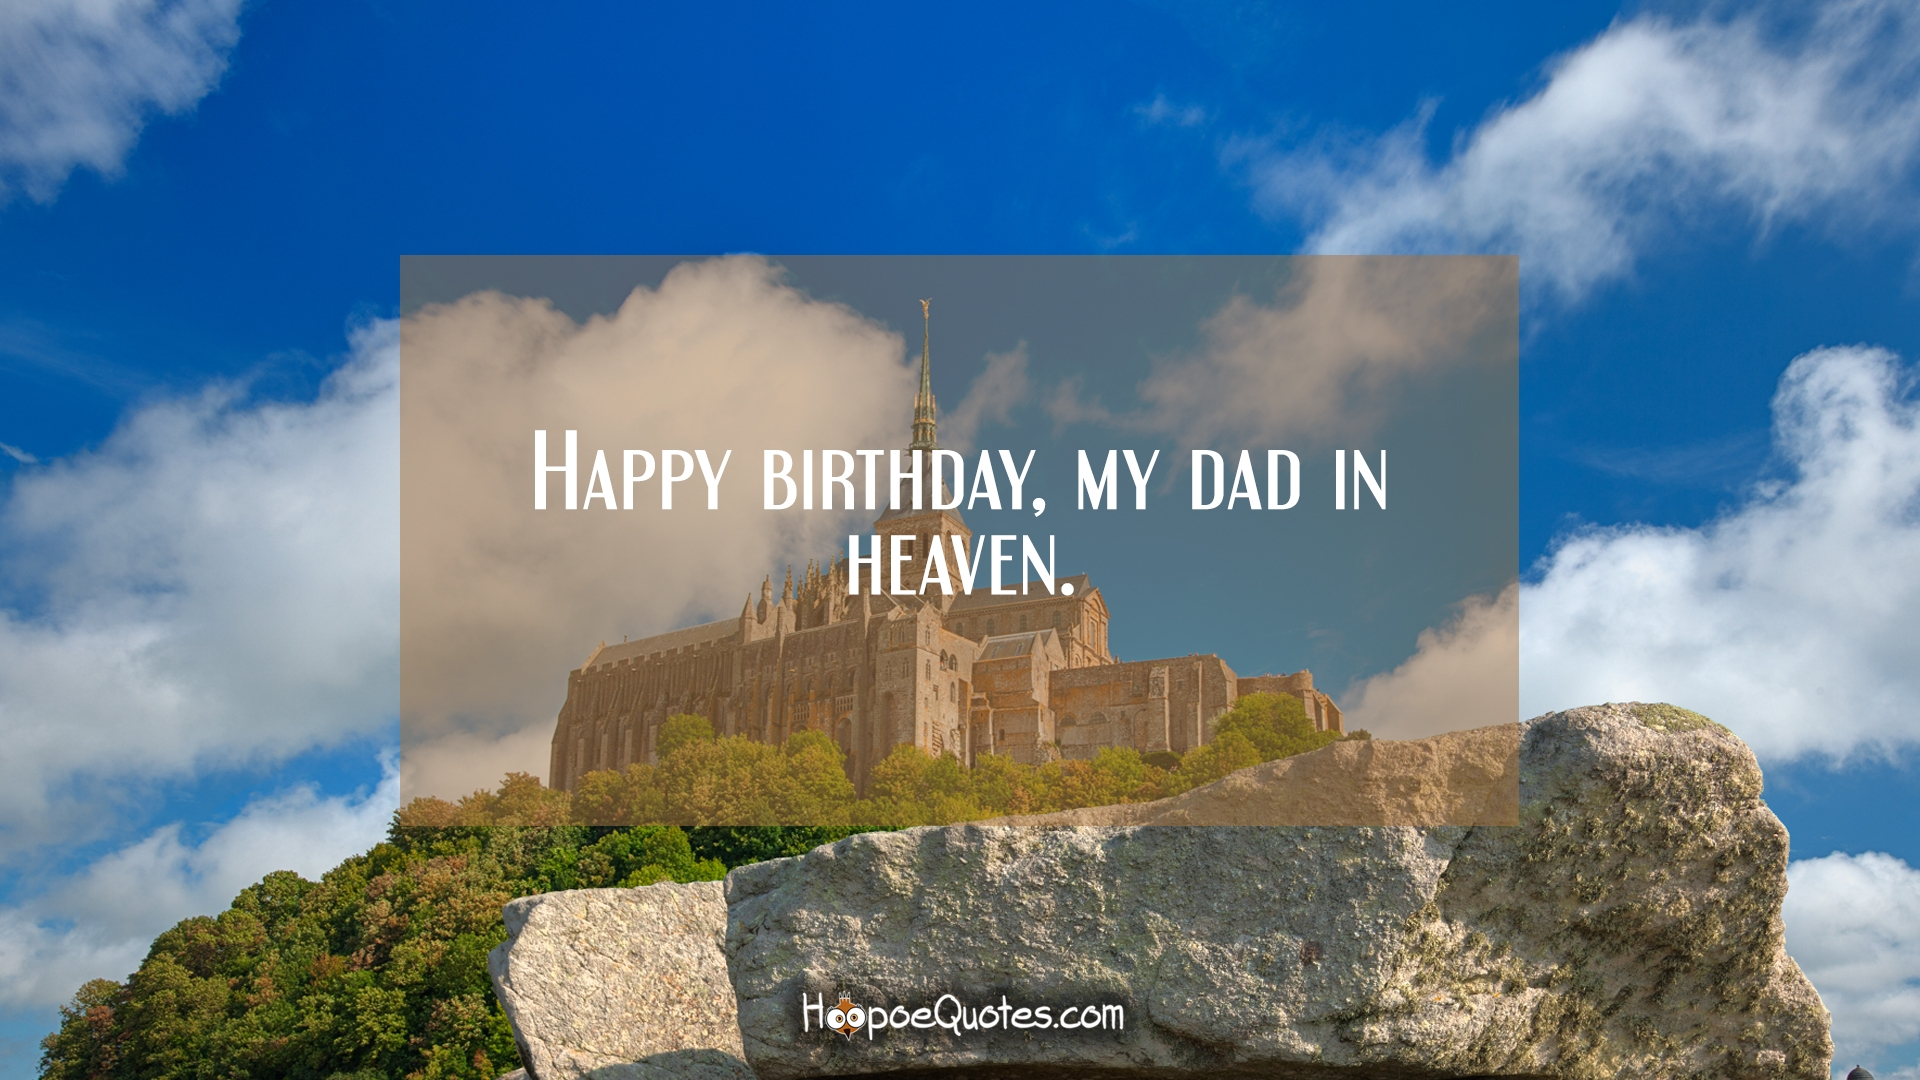 Birthday Wishes For Father In Heaven ~ Happy birthday my dad in heaven hoopoequotes